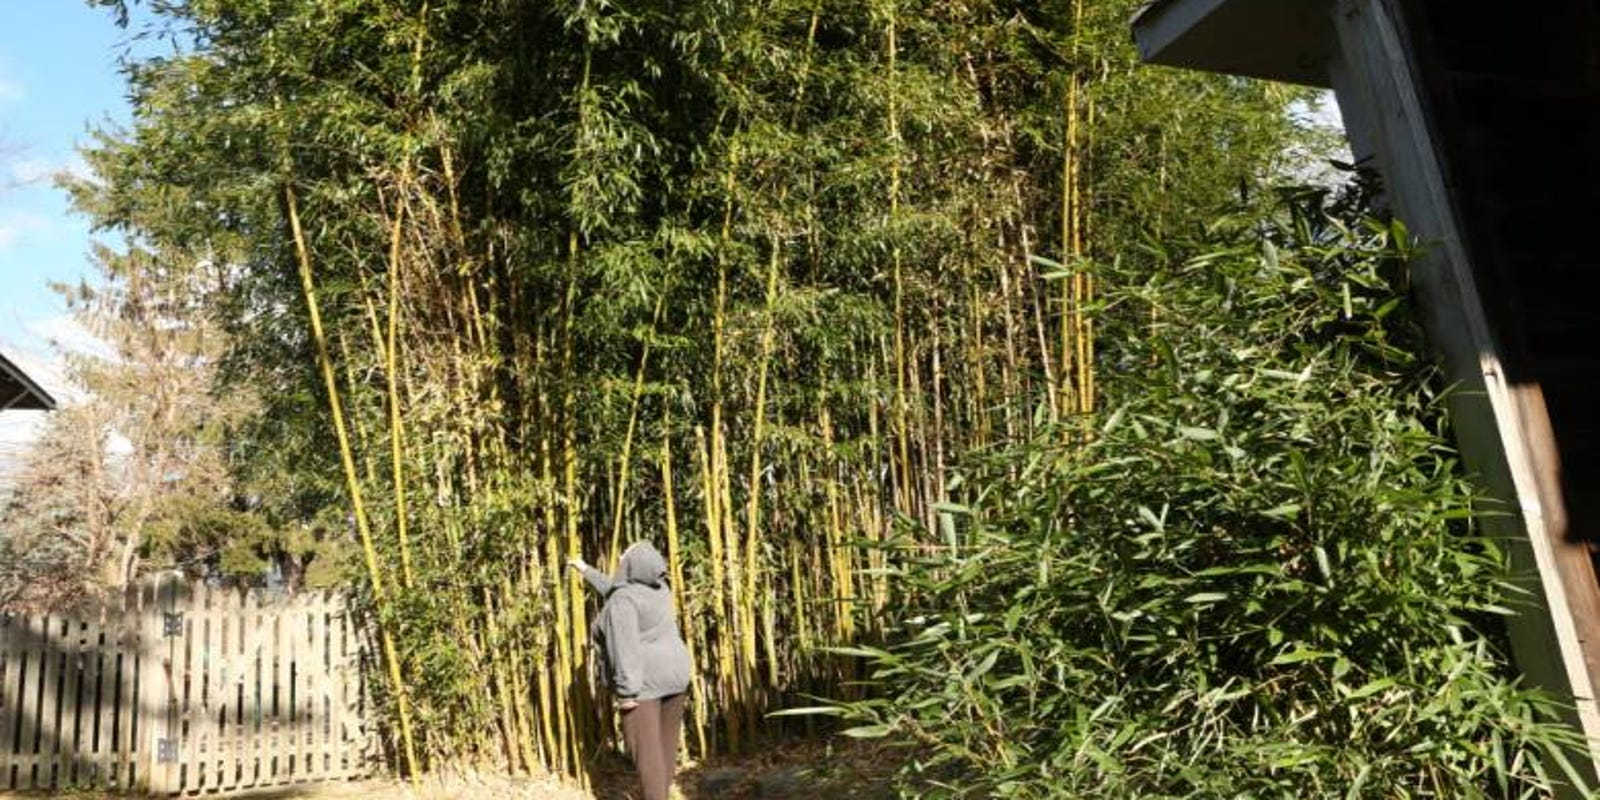 Nj Supreme Court Divided Over Neighbors Fight About Backyard Bamboo